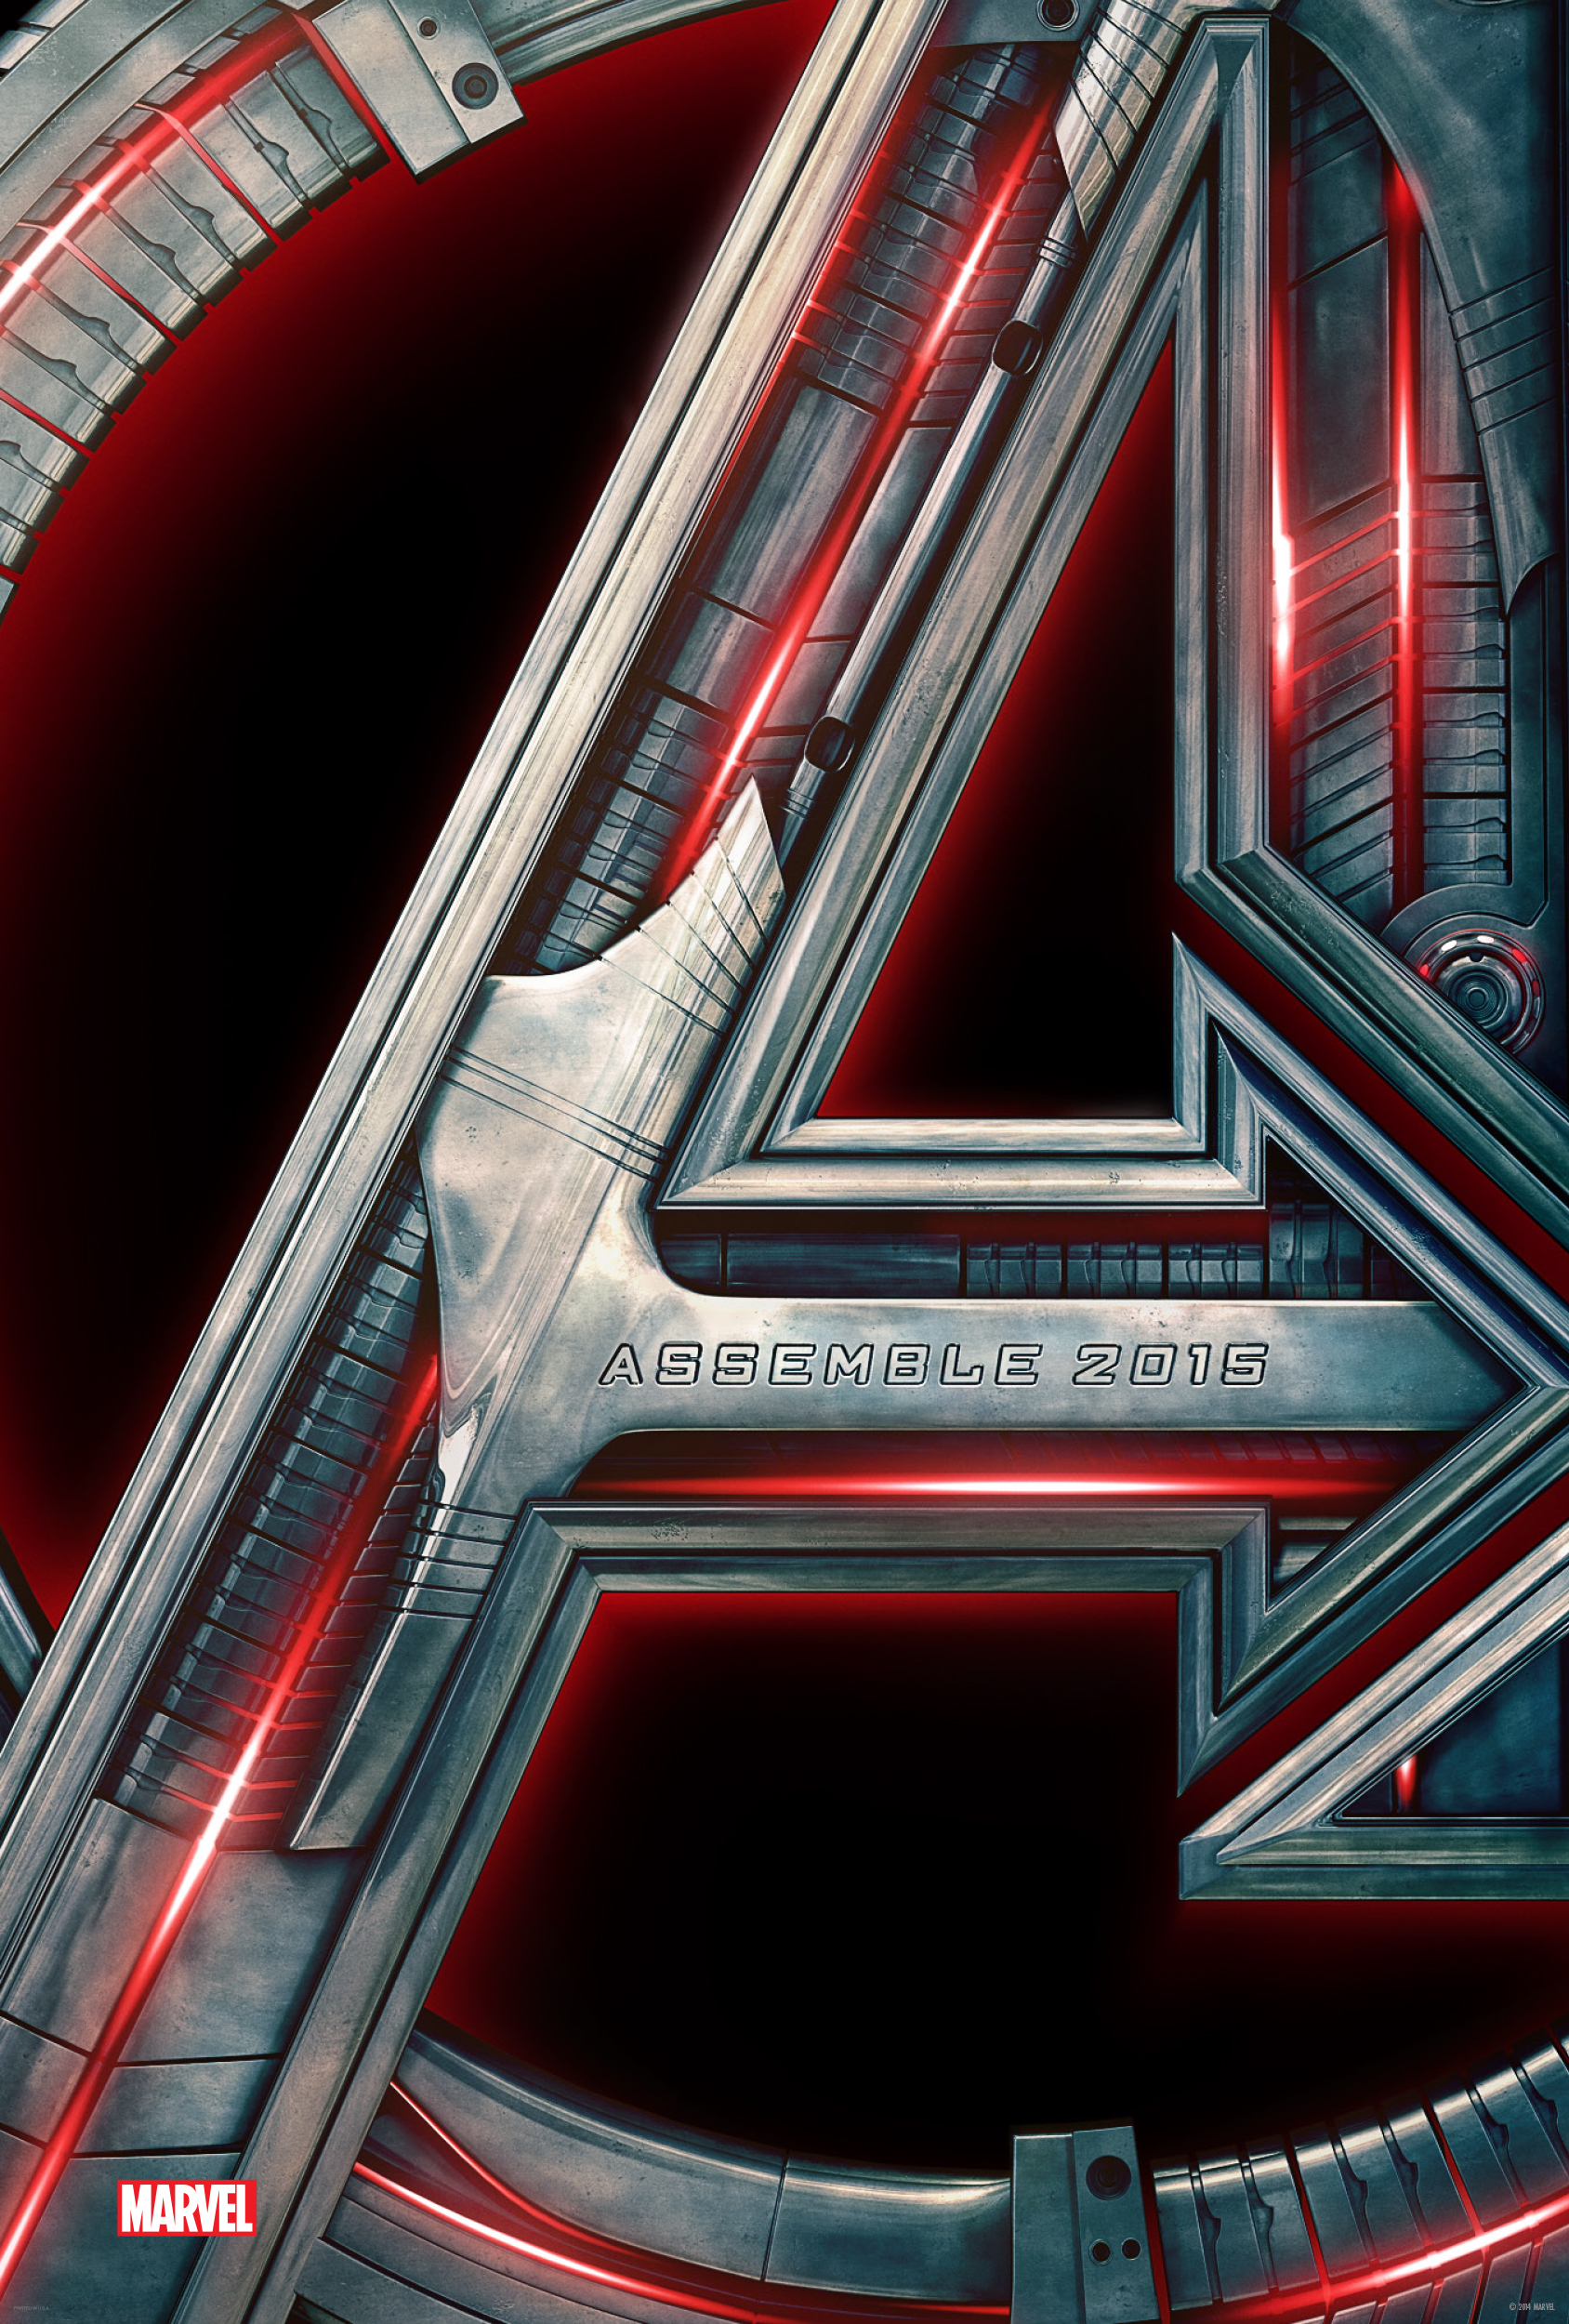 Teaser Trailer: Avengers: Age of Ultron